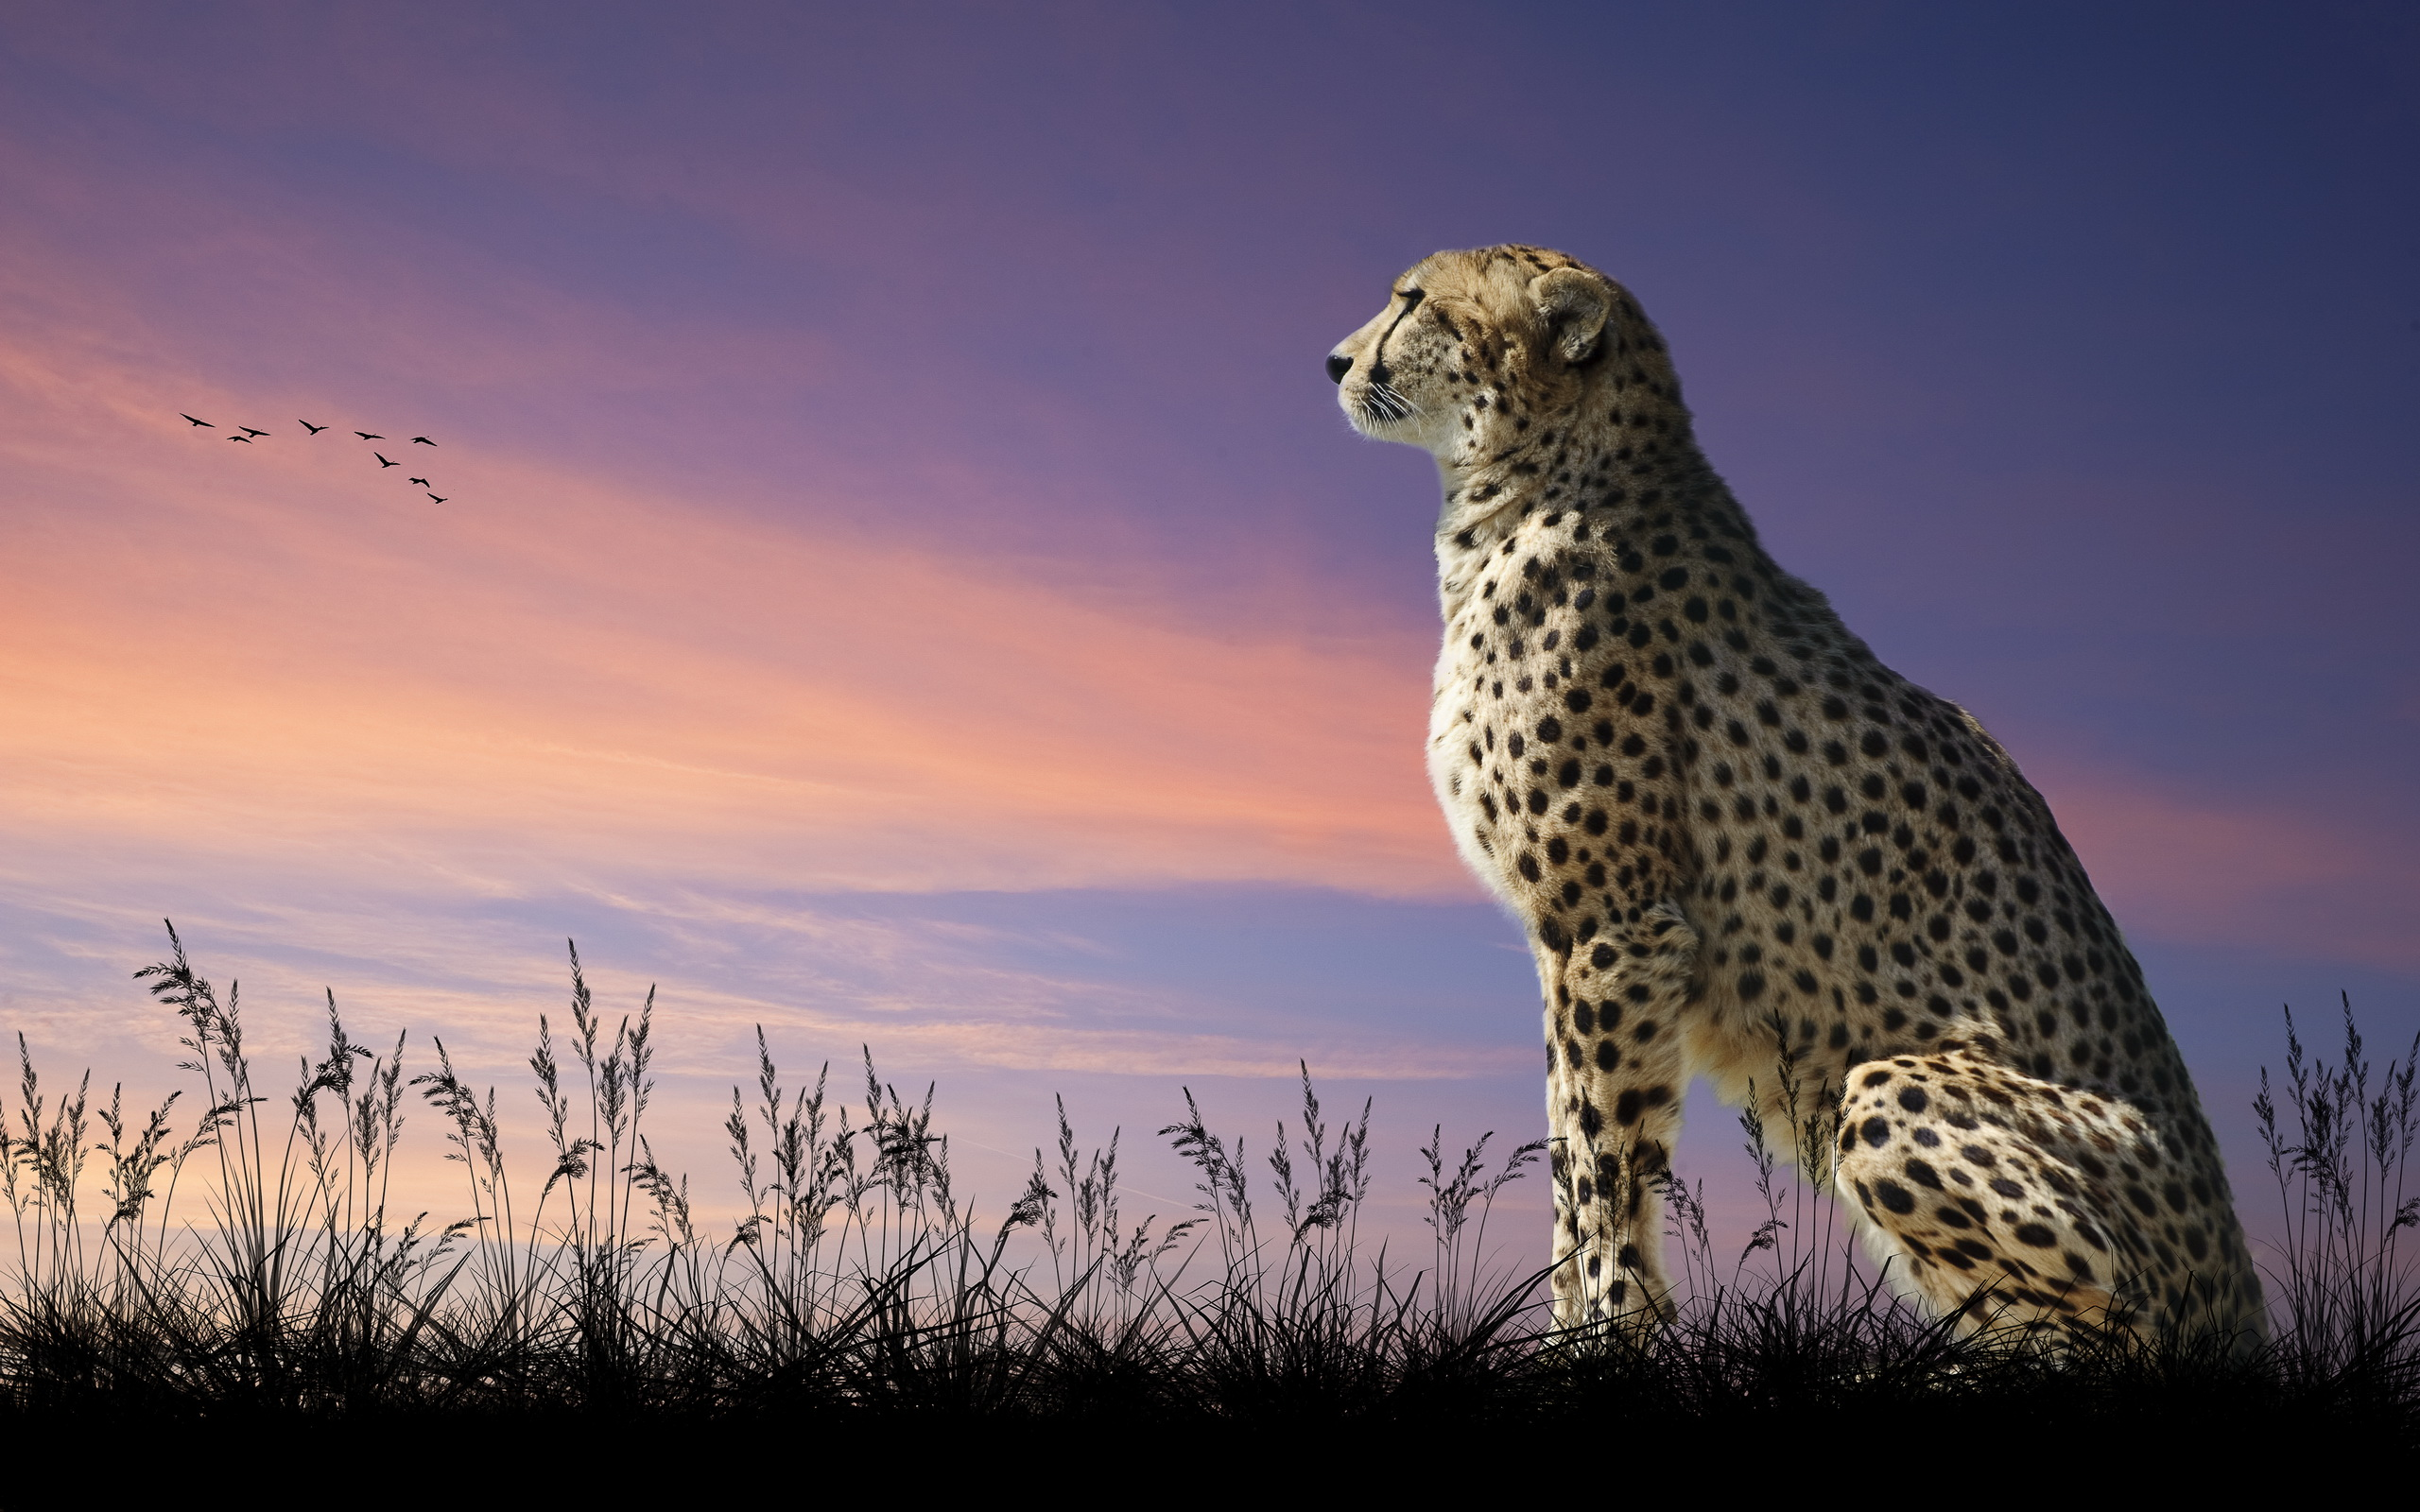 Wallpaper Coca Cola 3d Widescreen Cheetah Backgrounds 11874 Hdwpro